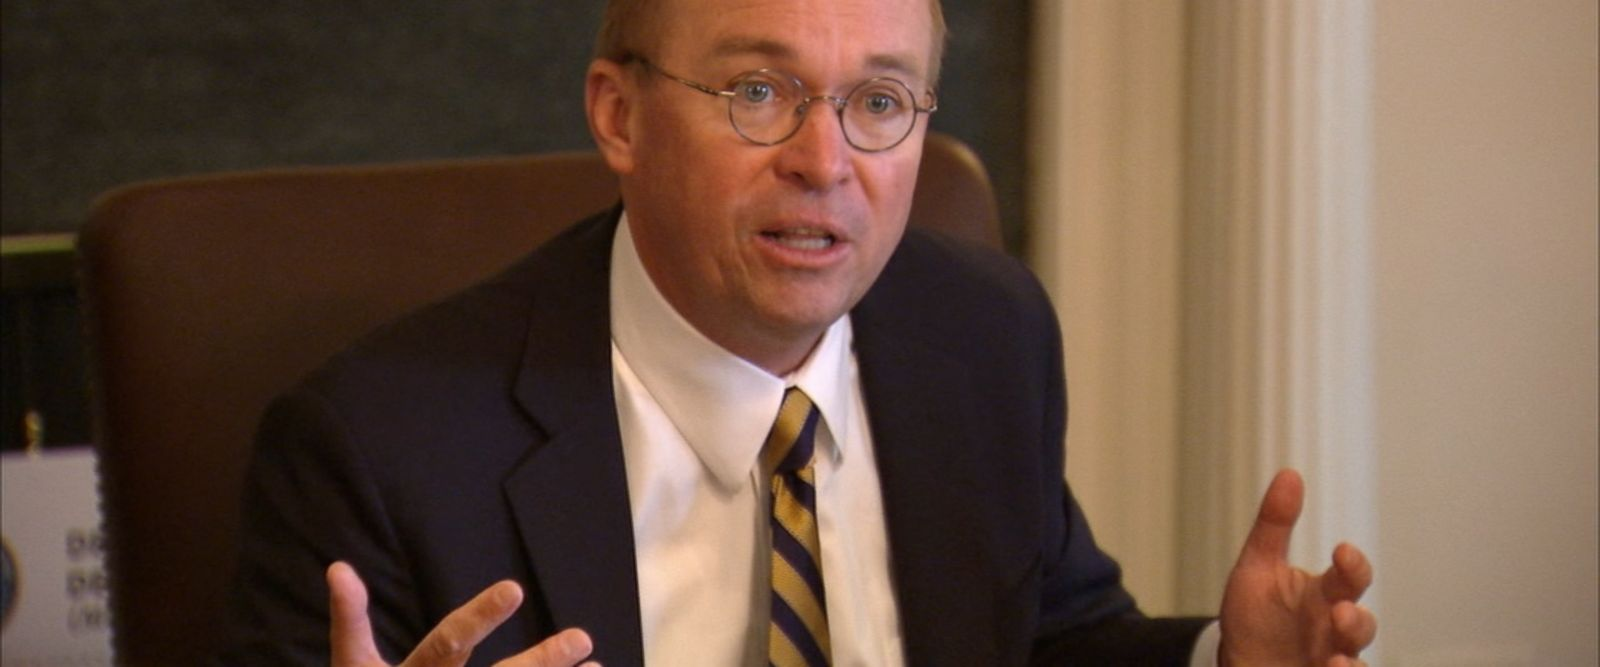 VIDEO: Mick Mulvaney, director of the Consumer Financial Protection Bureau, delivered a food analogy when discussing the proposed merging of Education and Labor departments.